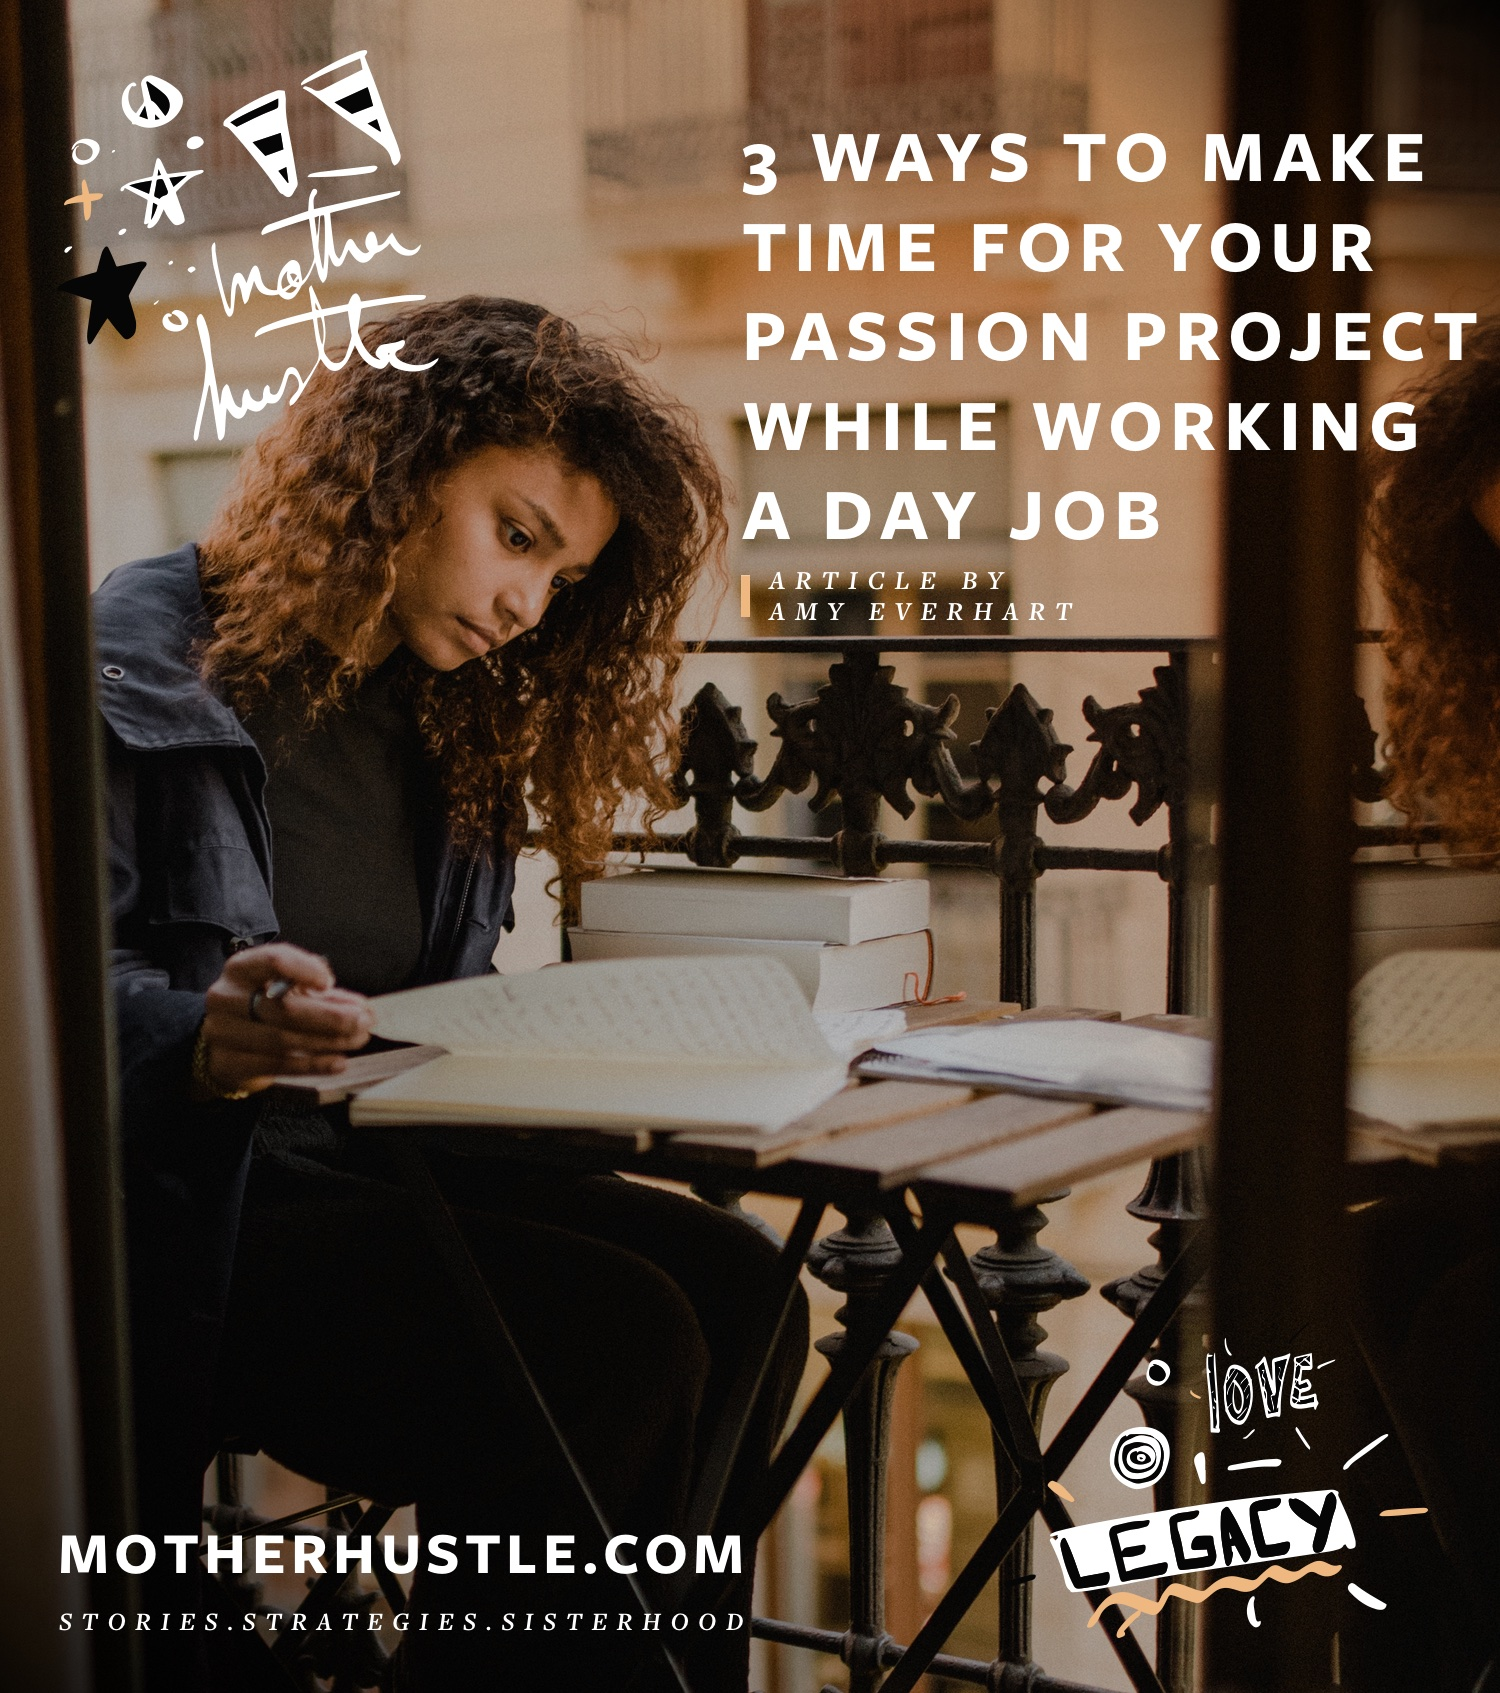 3 Ways to Make Time for Your Passion Project While Working a Day Job - BY Amy Everhart for MotherHustle